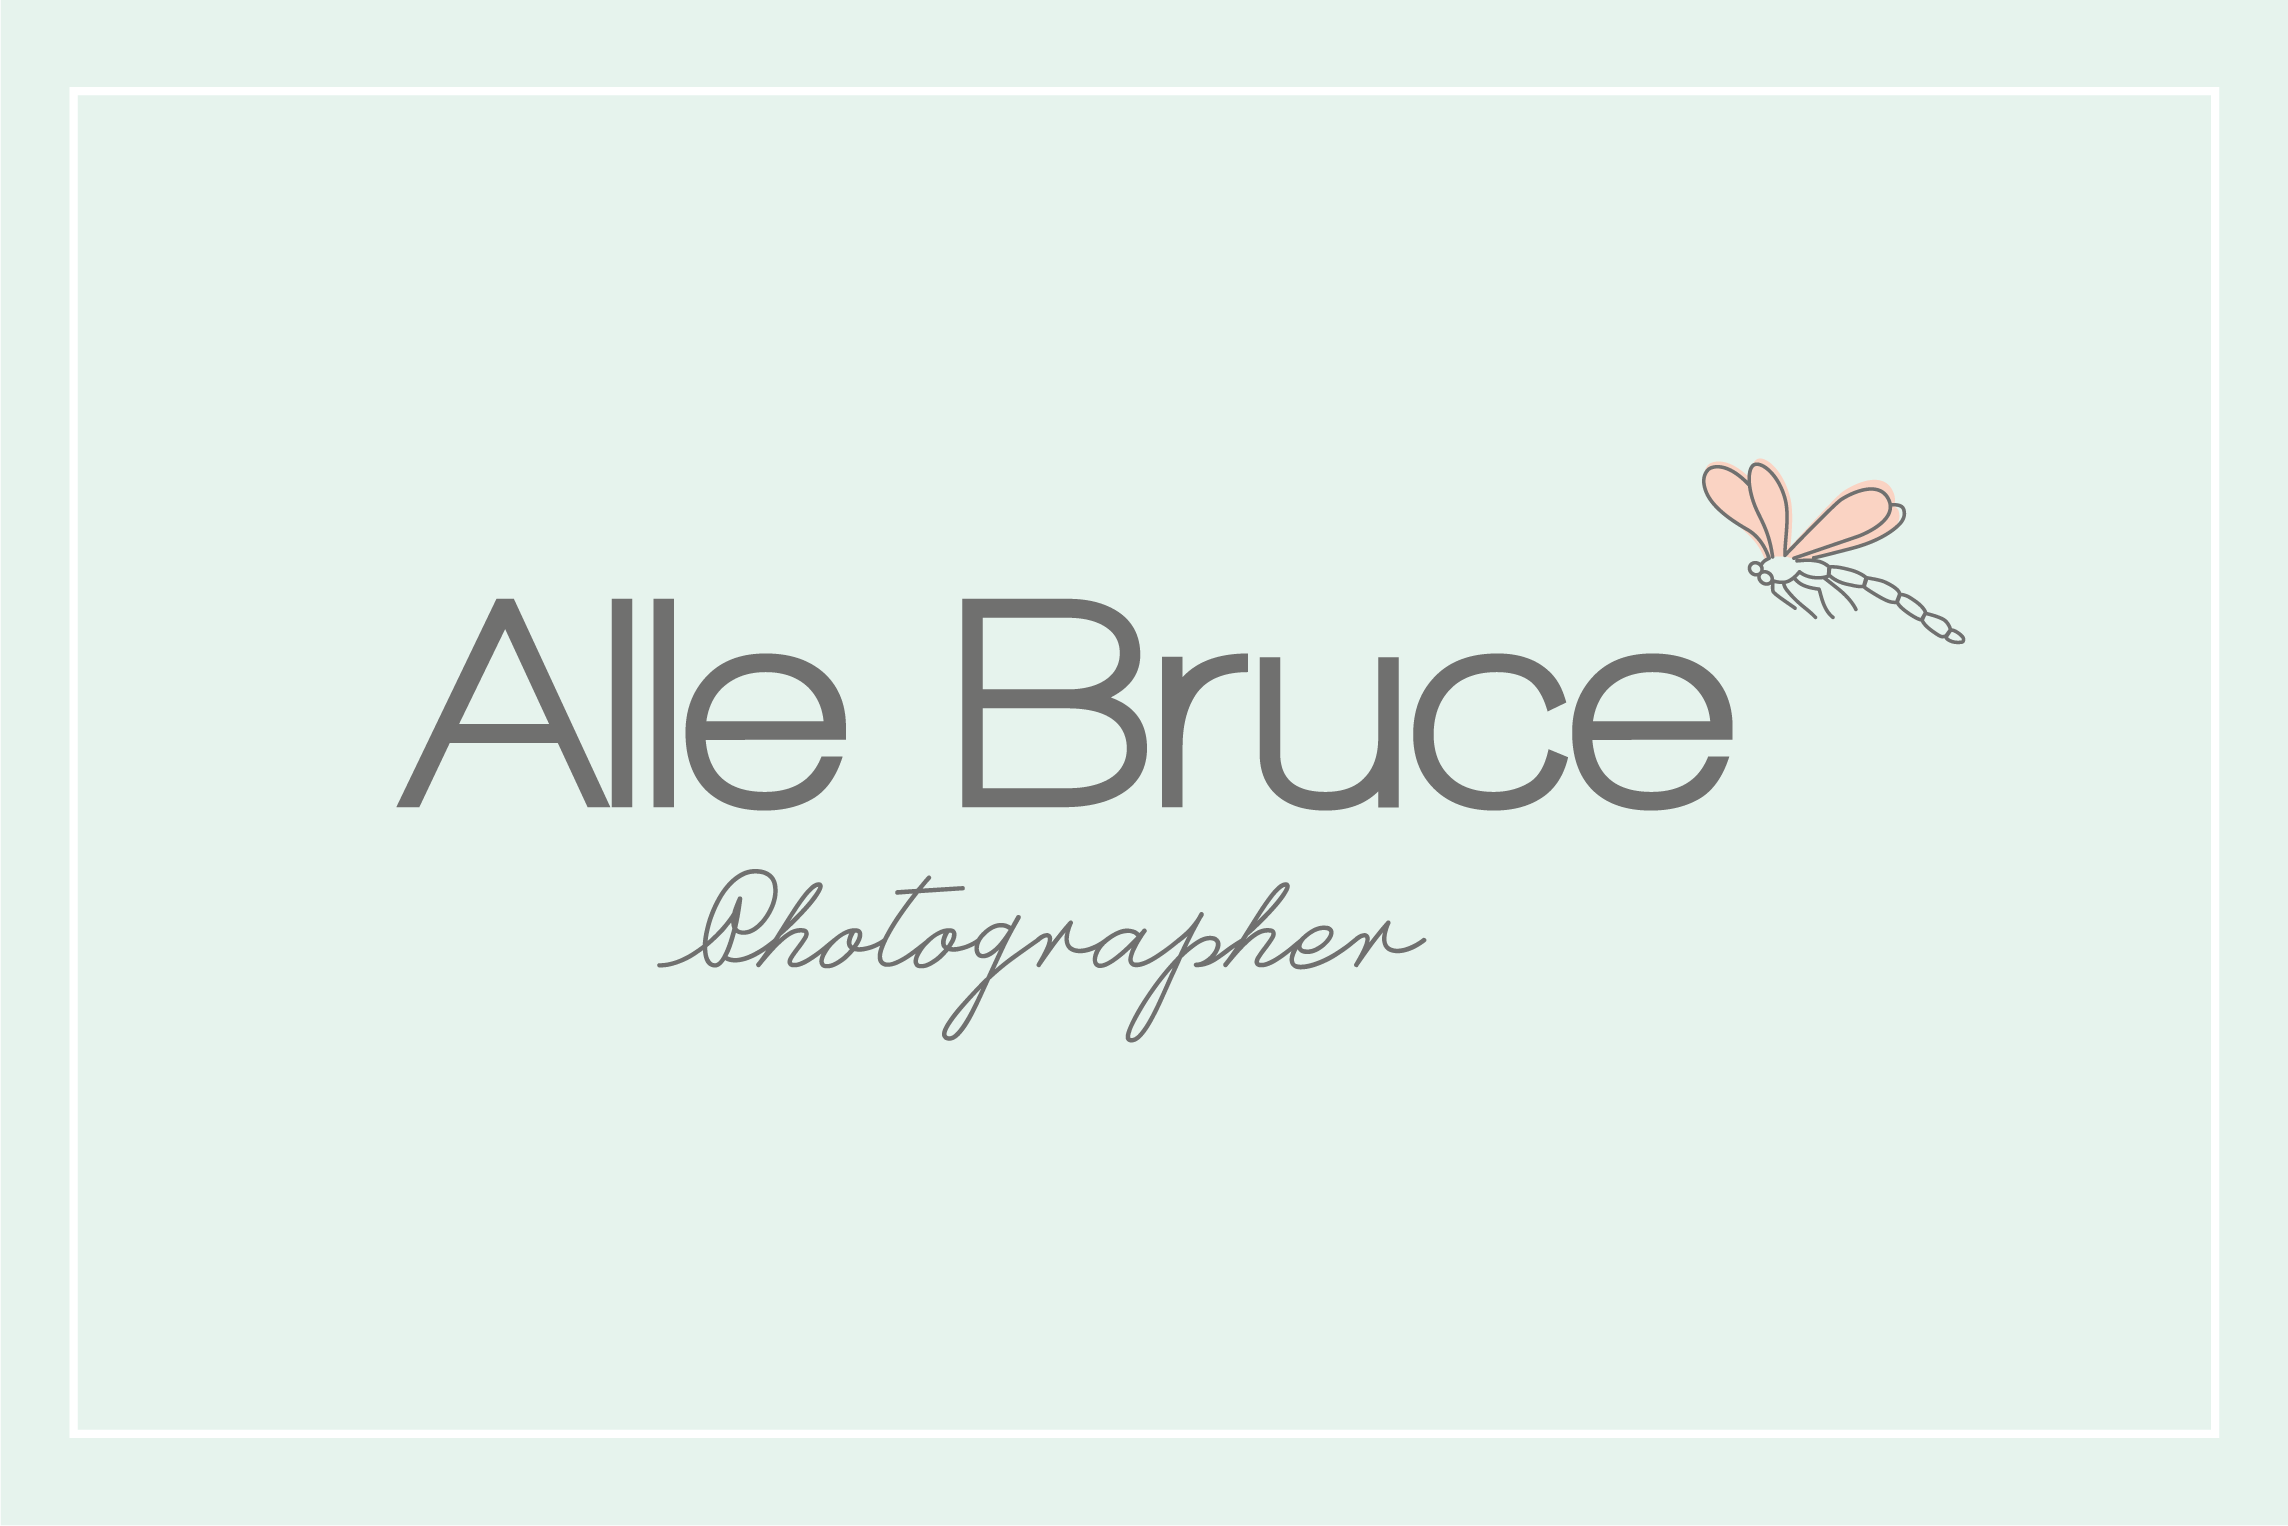 Alle Bruce Photography